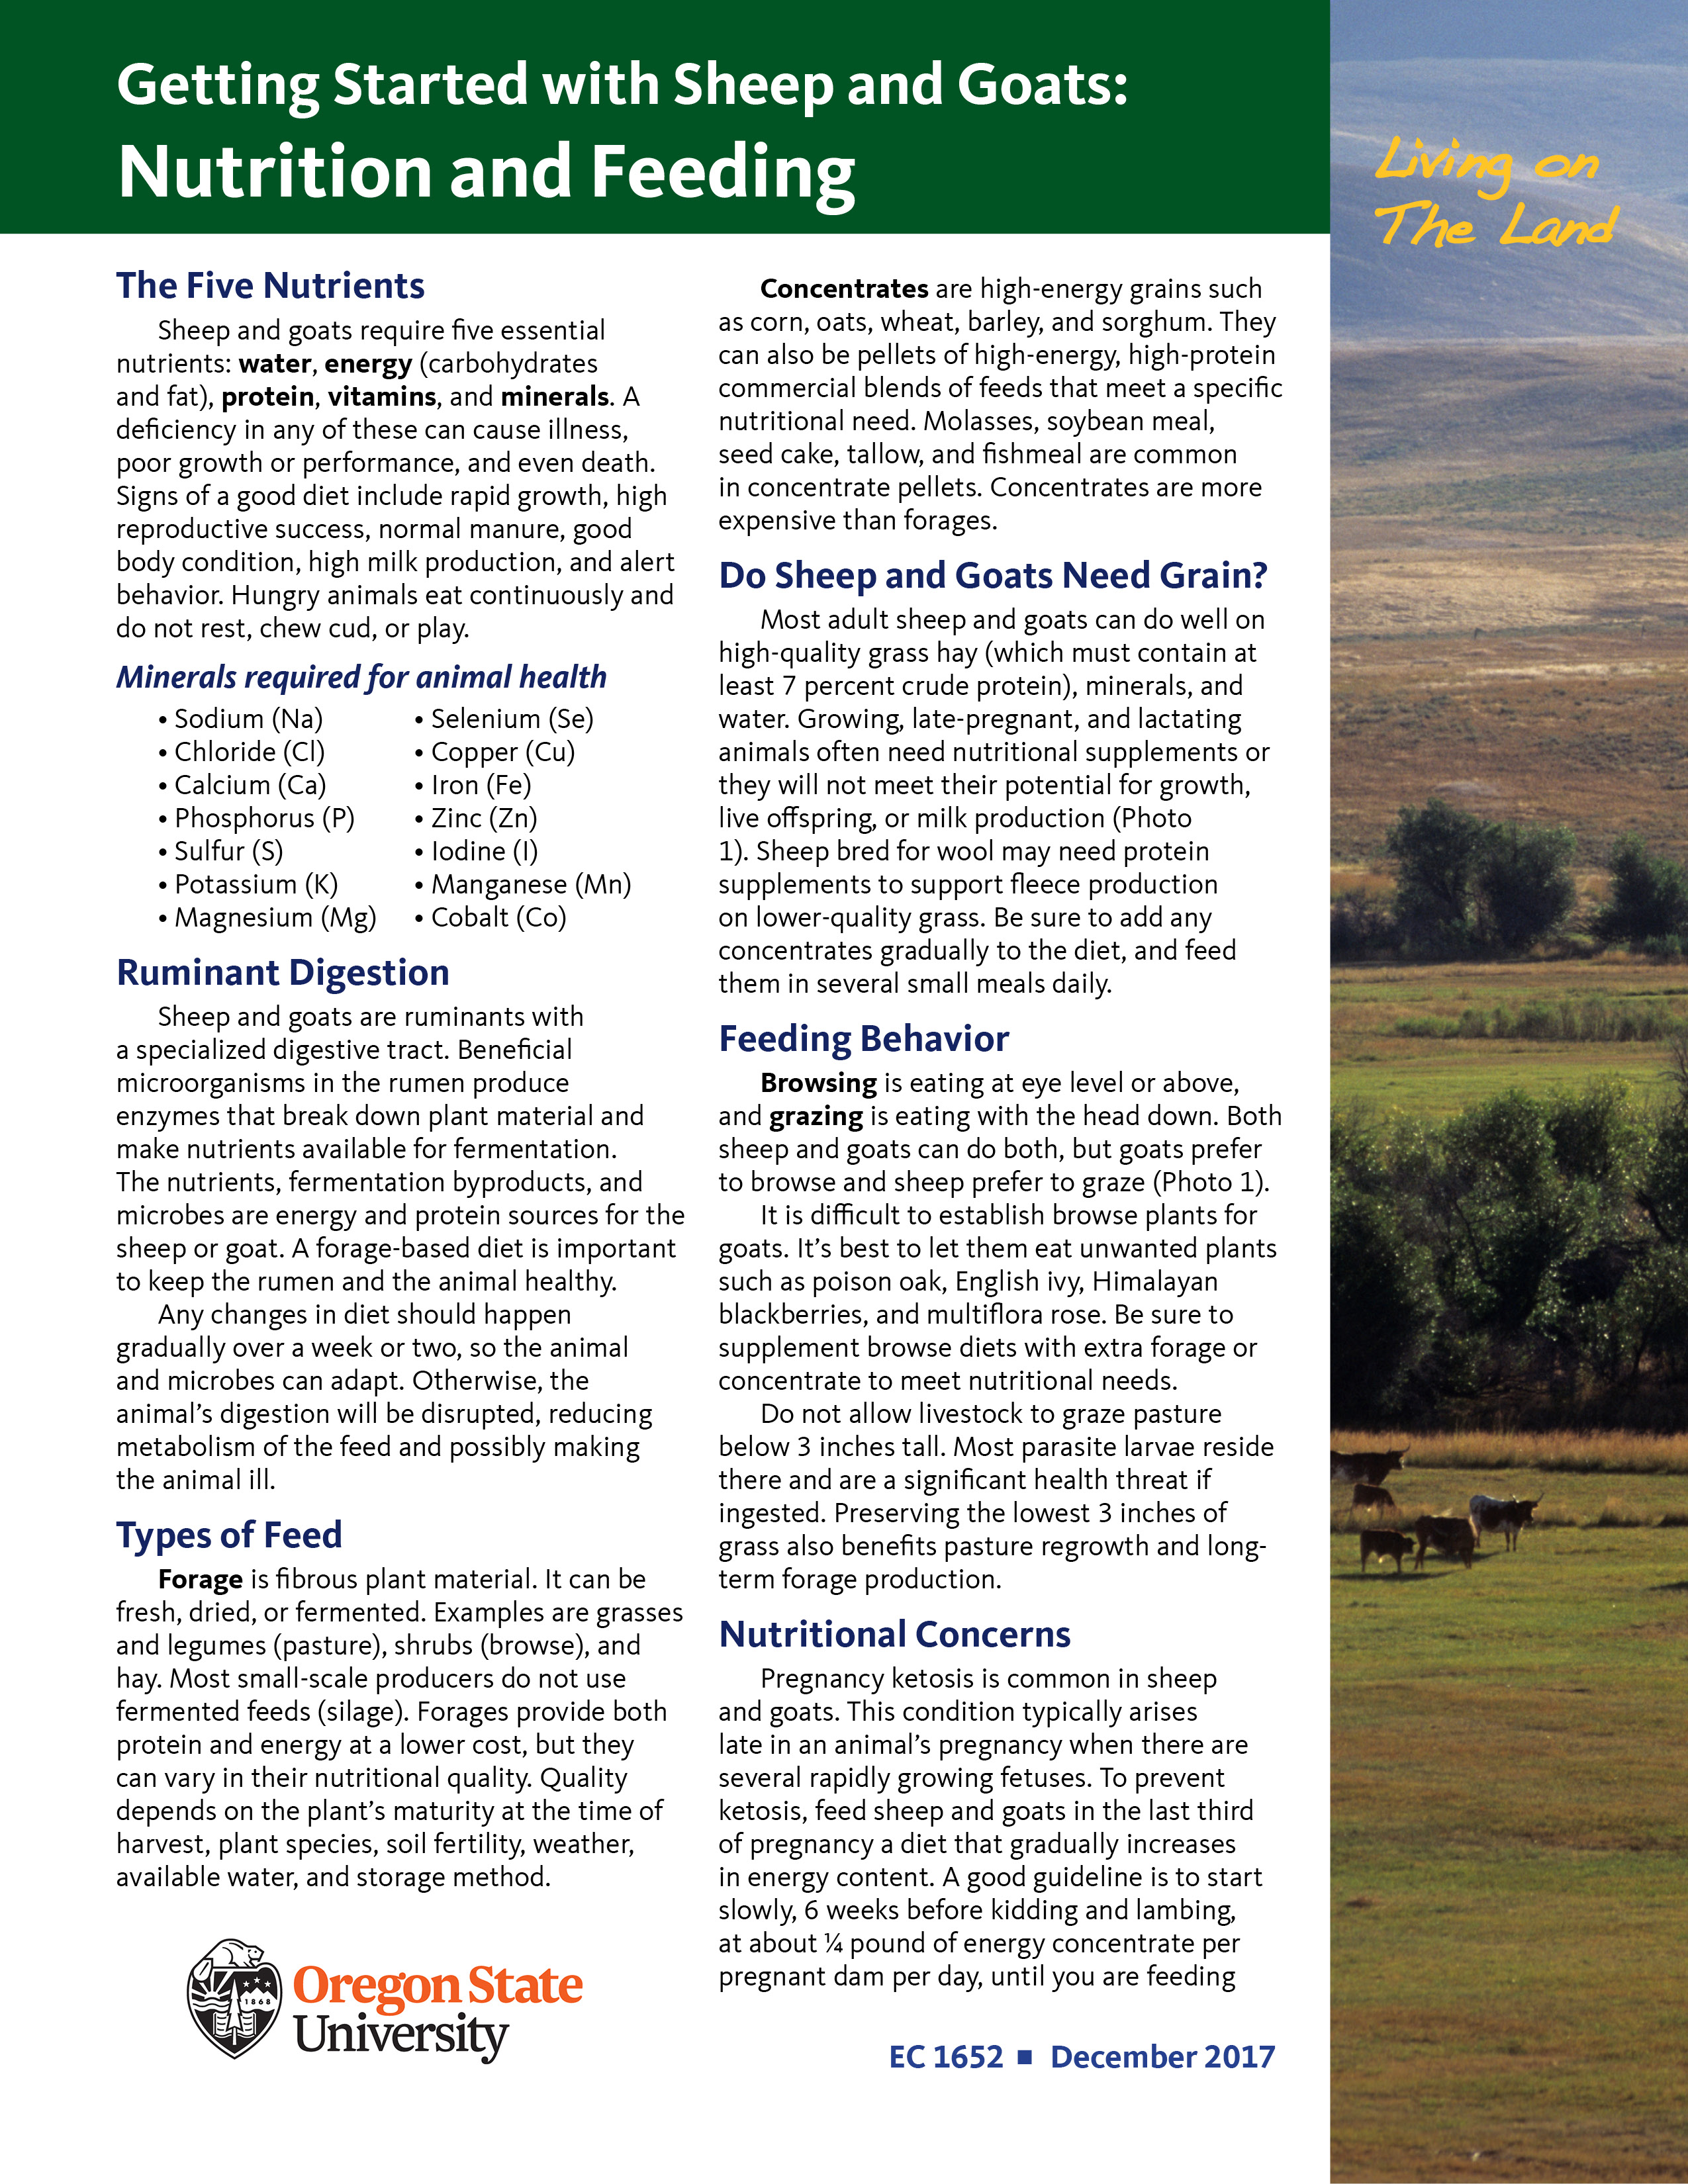 Living on the Land: Getting Started with Sheep and Goats